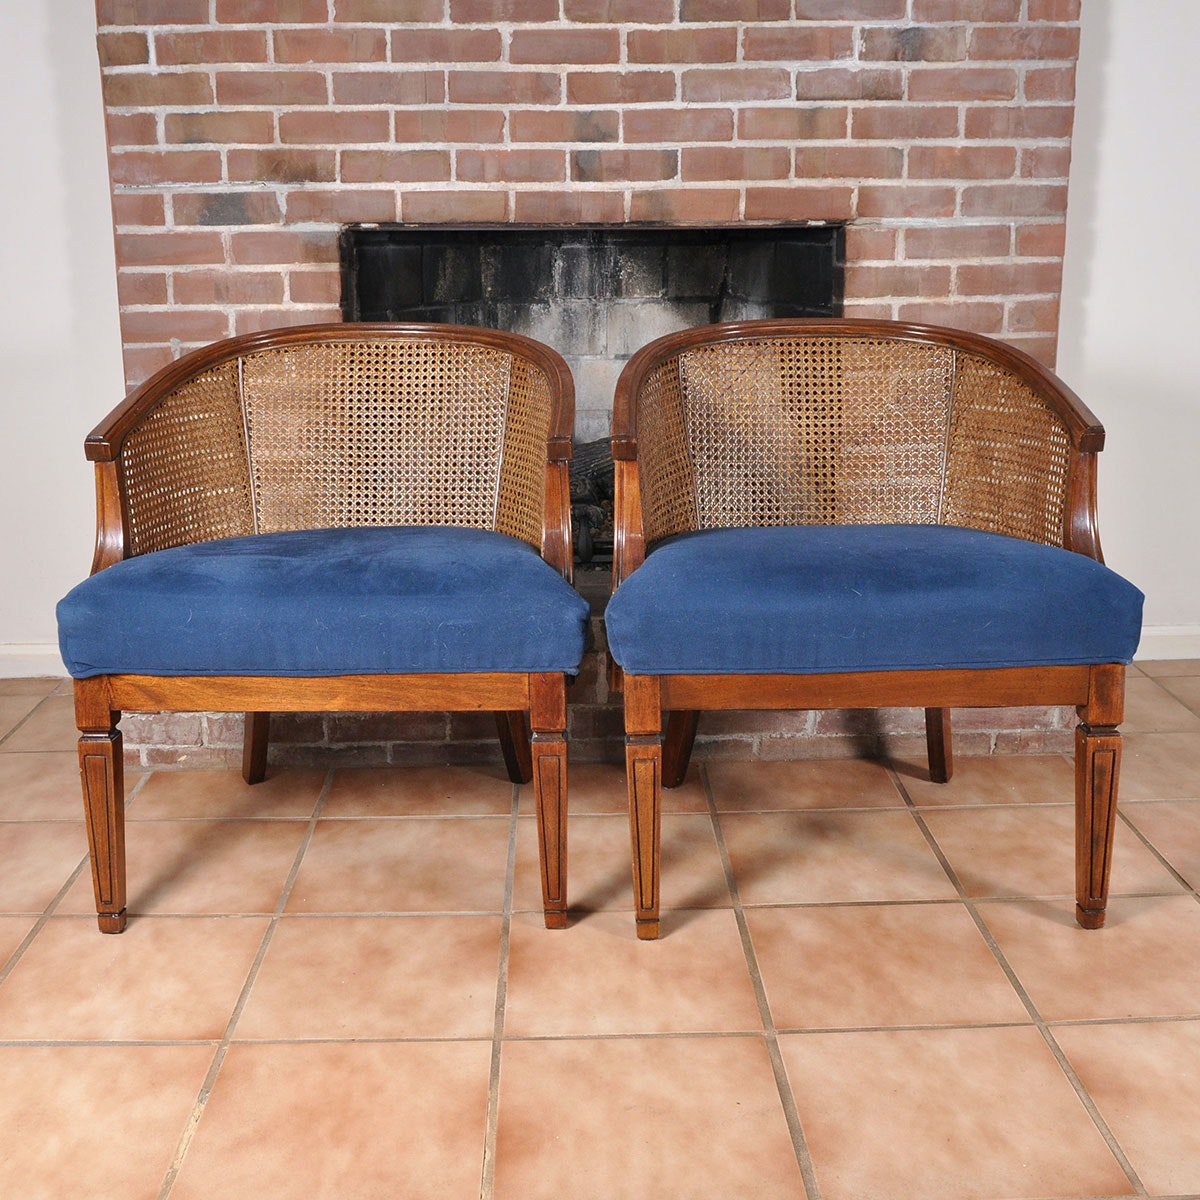 Pair Of Vintage Walnut Barrel Back Chairs With Caning And Blue Padded Seats  ...